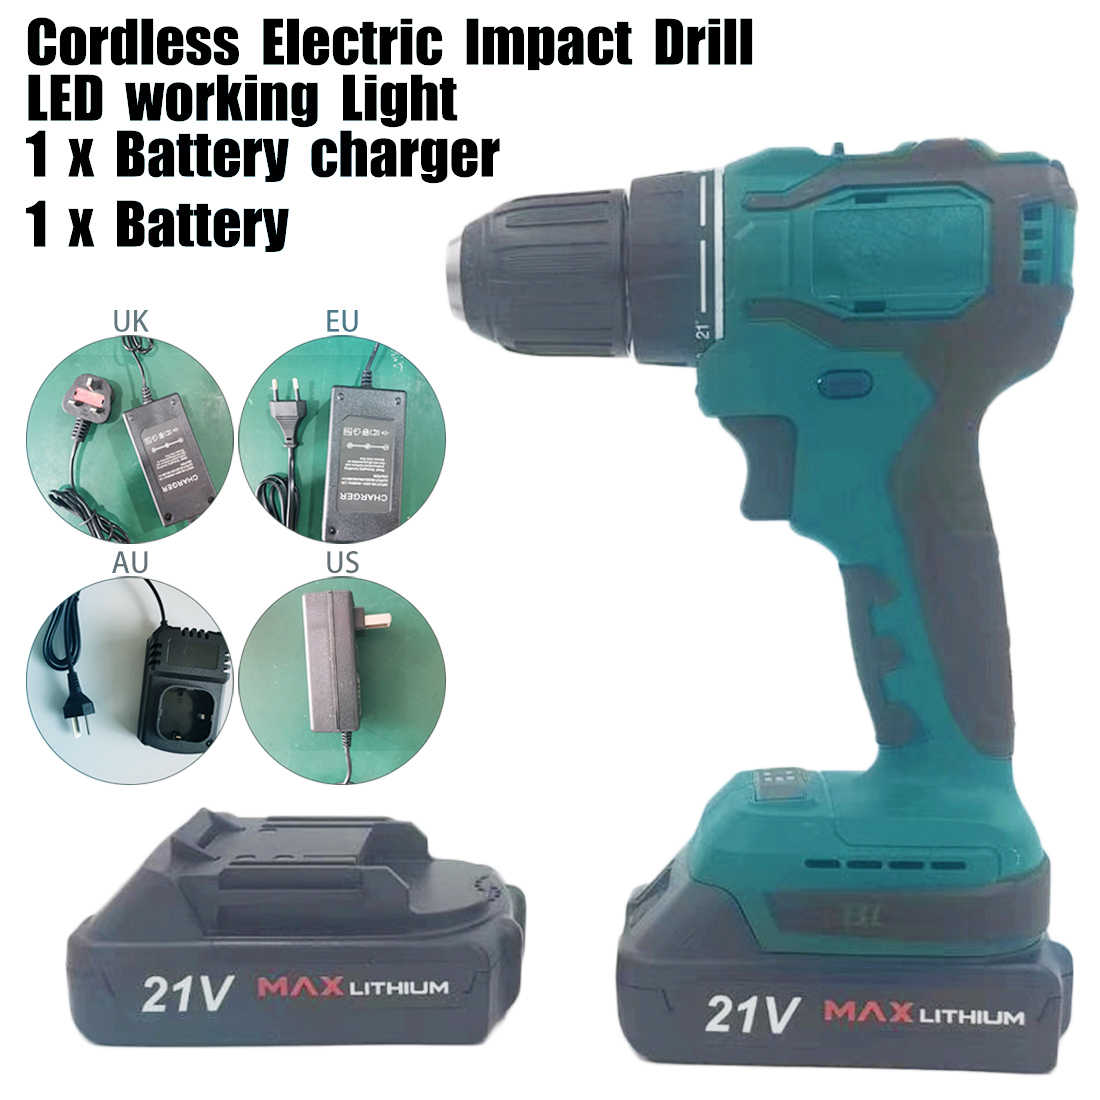 18V Cordless Impact Wrench Li-Ion Battery Screwdriver and Charger Kit with Built-in LED Working Light UK Plug 100-240V Impact Wrench